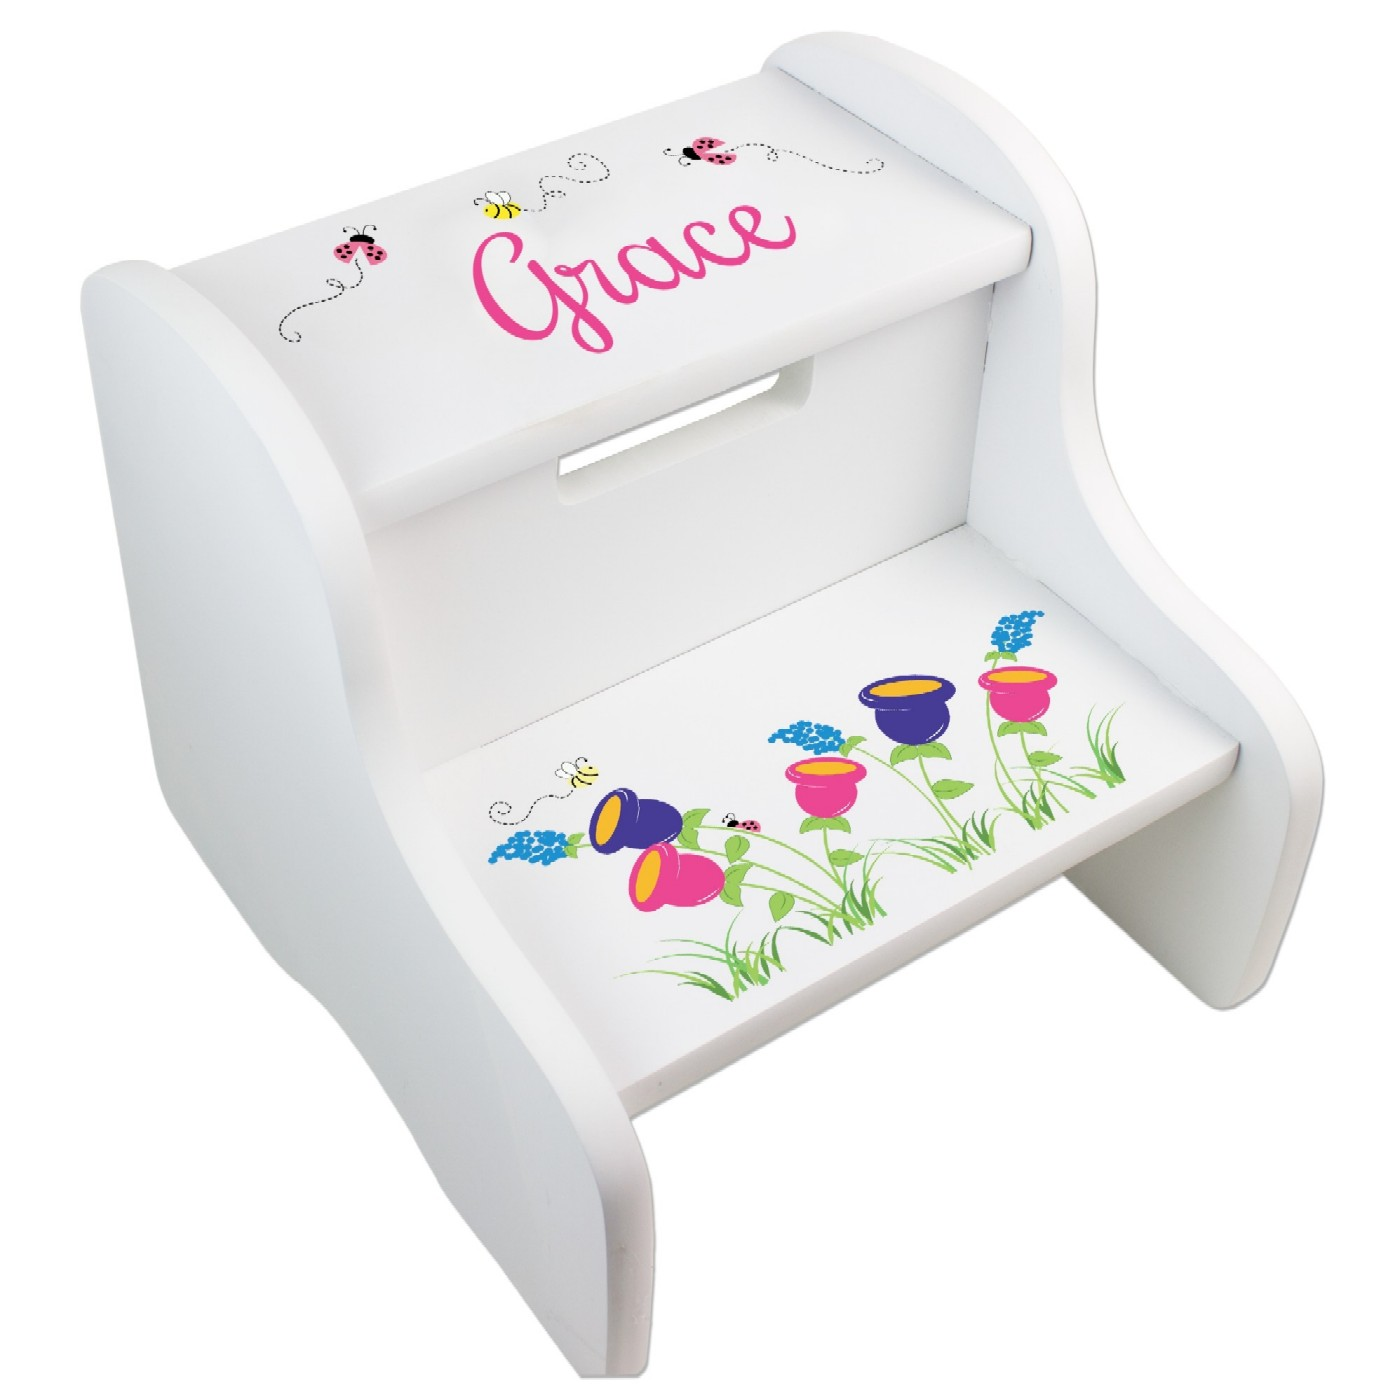 Personalized Imprinted Wooden Stools For Kids | SimplyUniqueBabyGifts.com  sc 1 st  Simply Unique Baby Gifts : wooden step stool for kids personalized - islam-shia.org